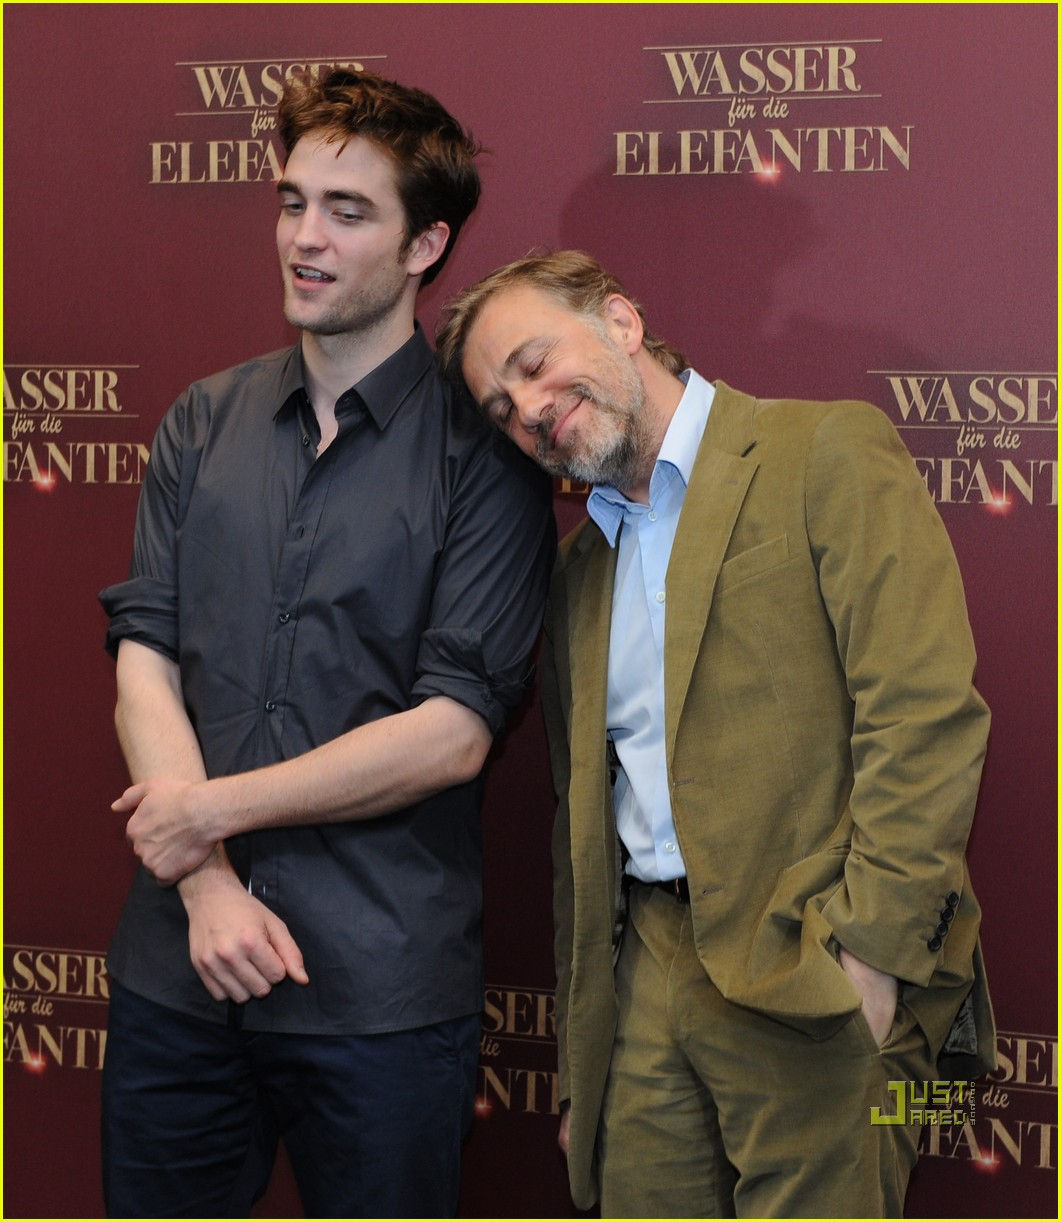 robert pattinson christoph waltz water for elephants photo call berlin 05